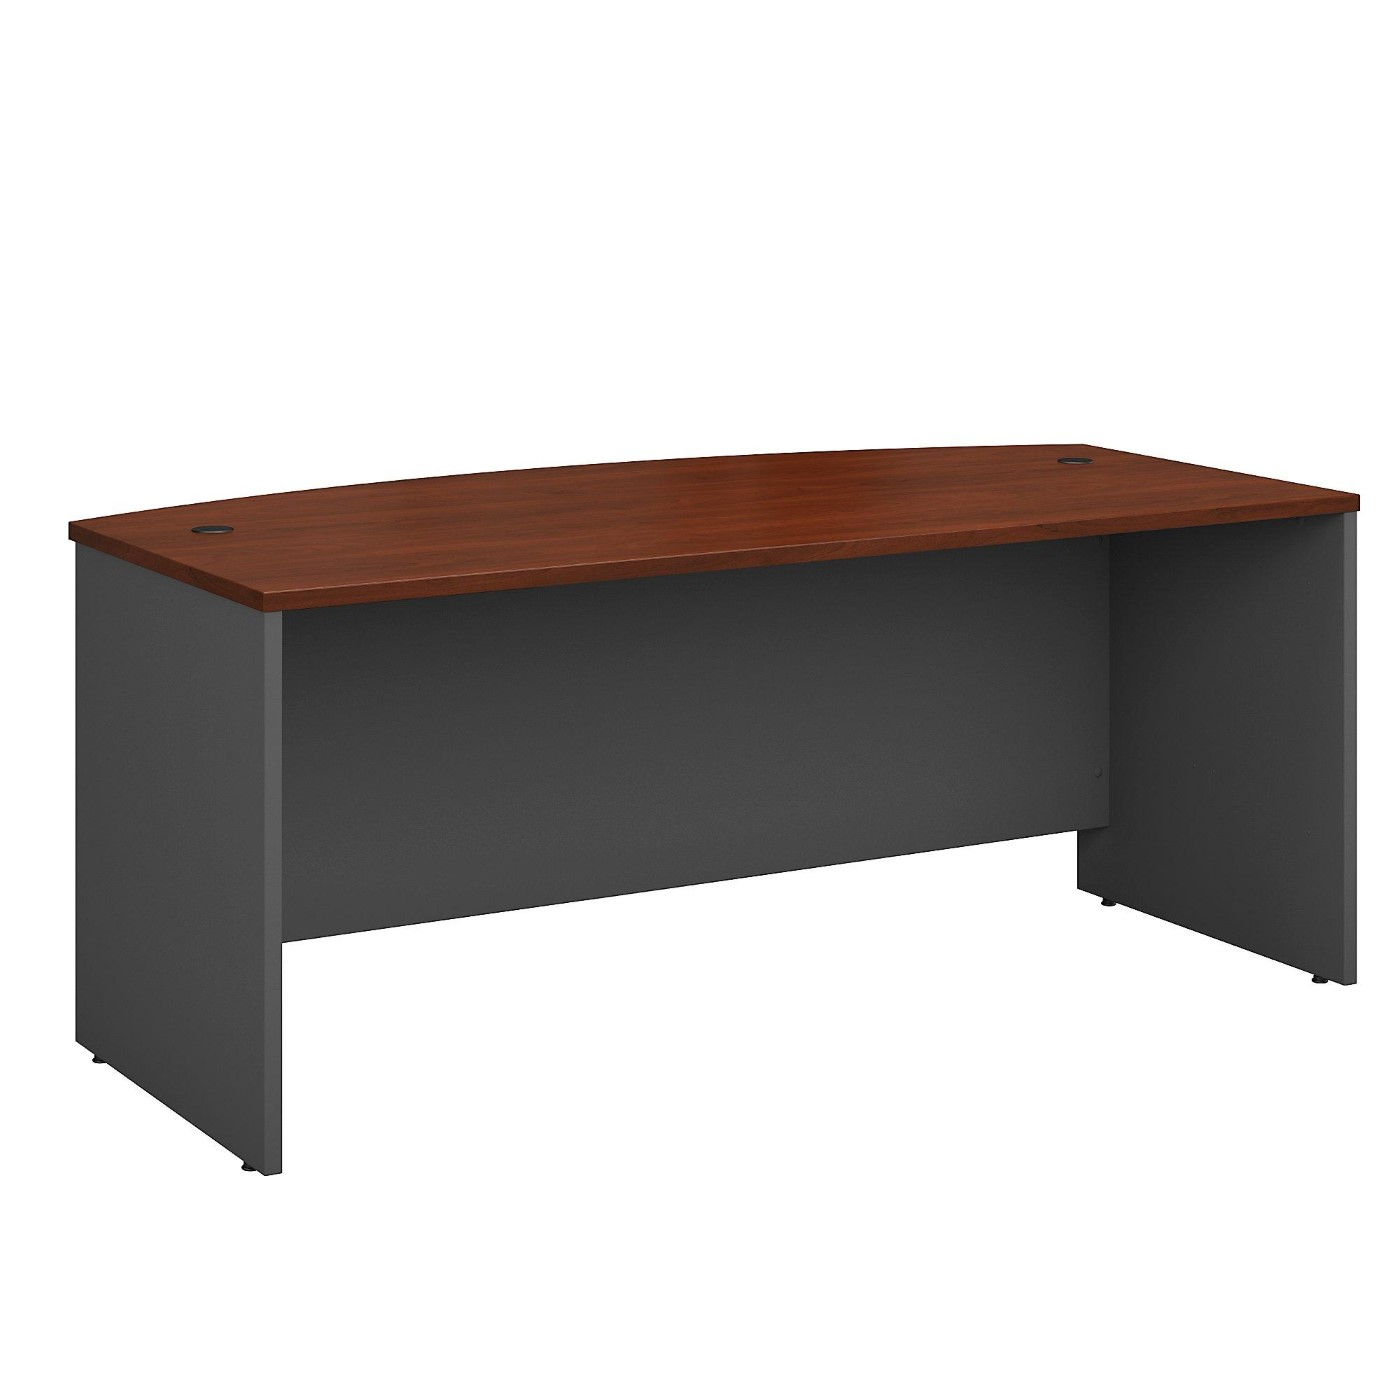 <font color=#c60><b>BUSH BUSINESS FURNITURE SERIES C 72W X 36D BOW FRONT DESK. FREE SHIPPING</font></b></font></b>